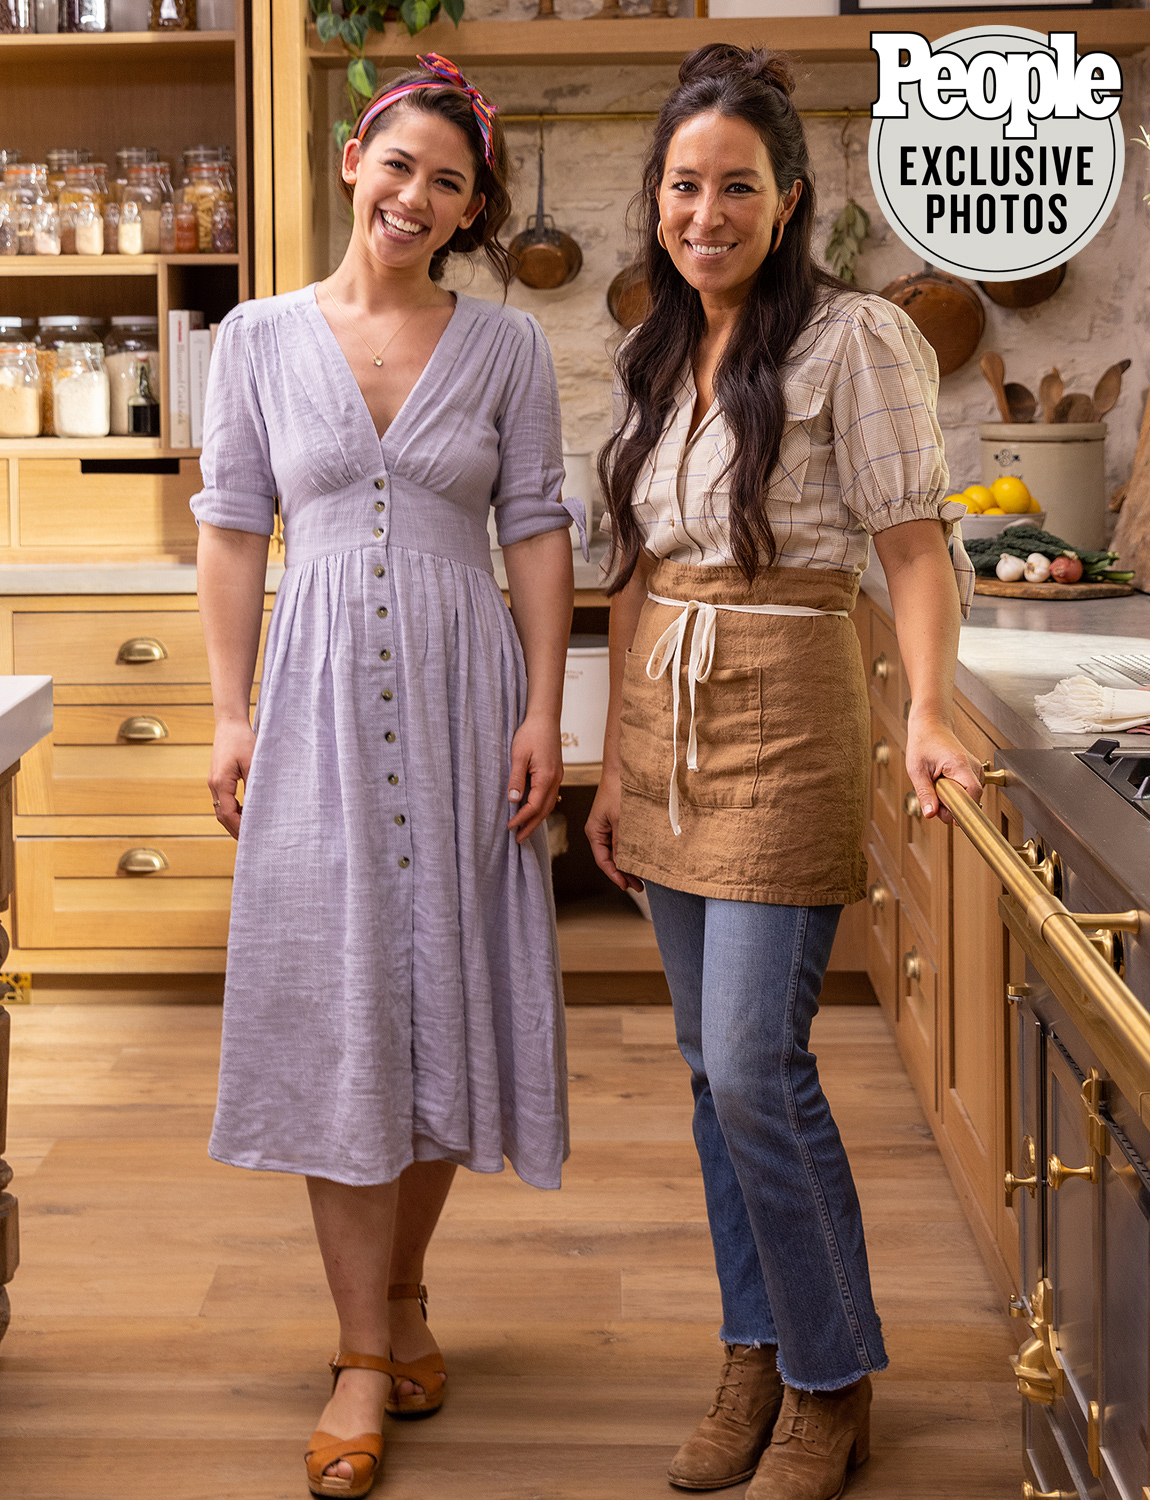 Joanna Gaines and Molly Yeh